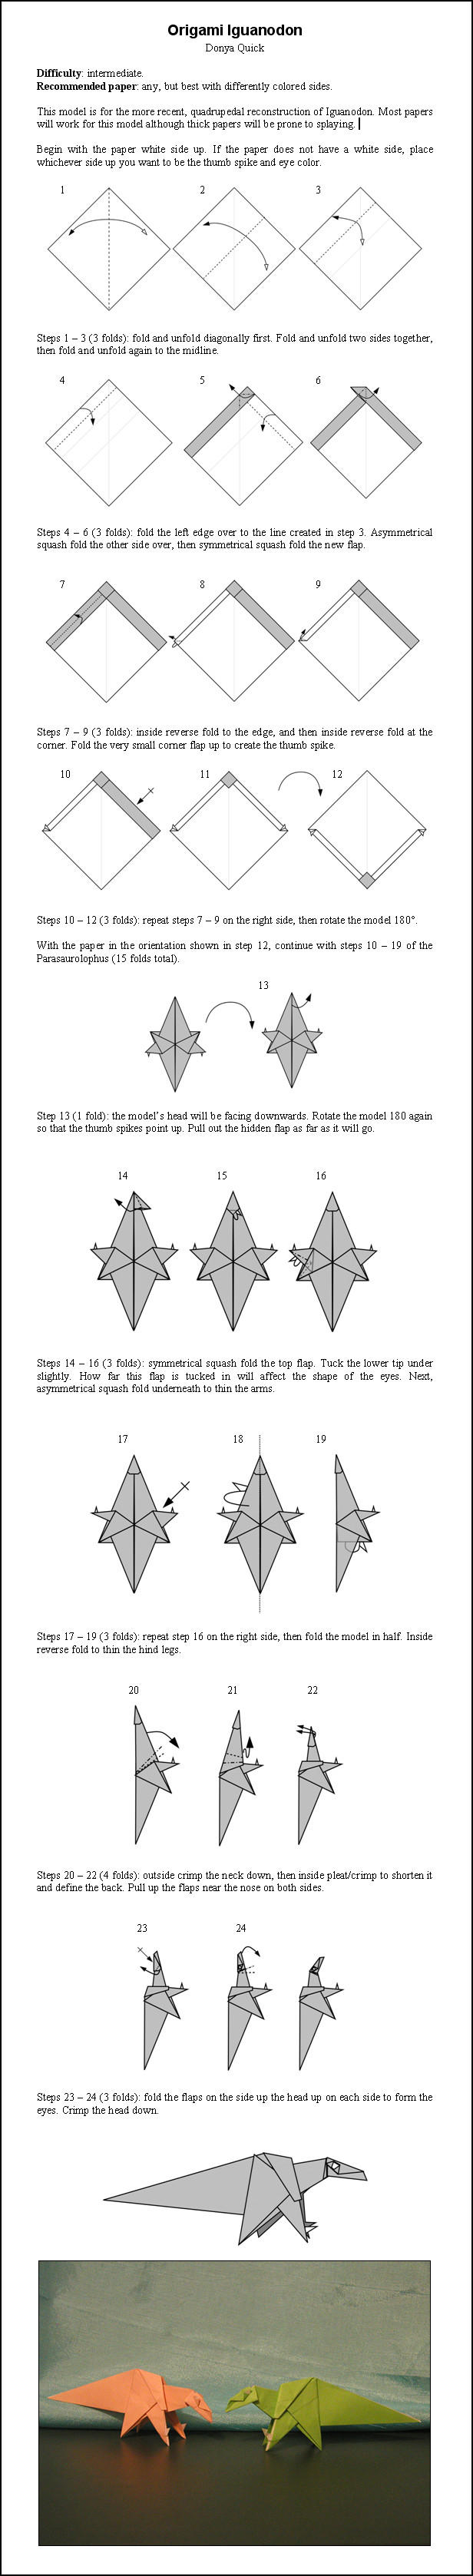 How To Make Origami Dragon Claws Step By Step